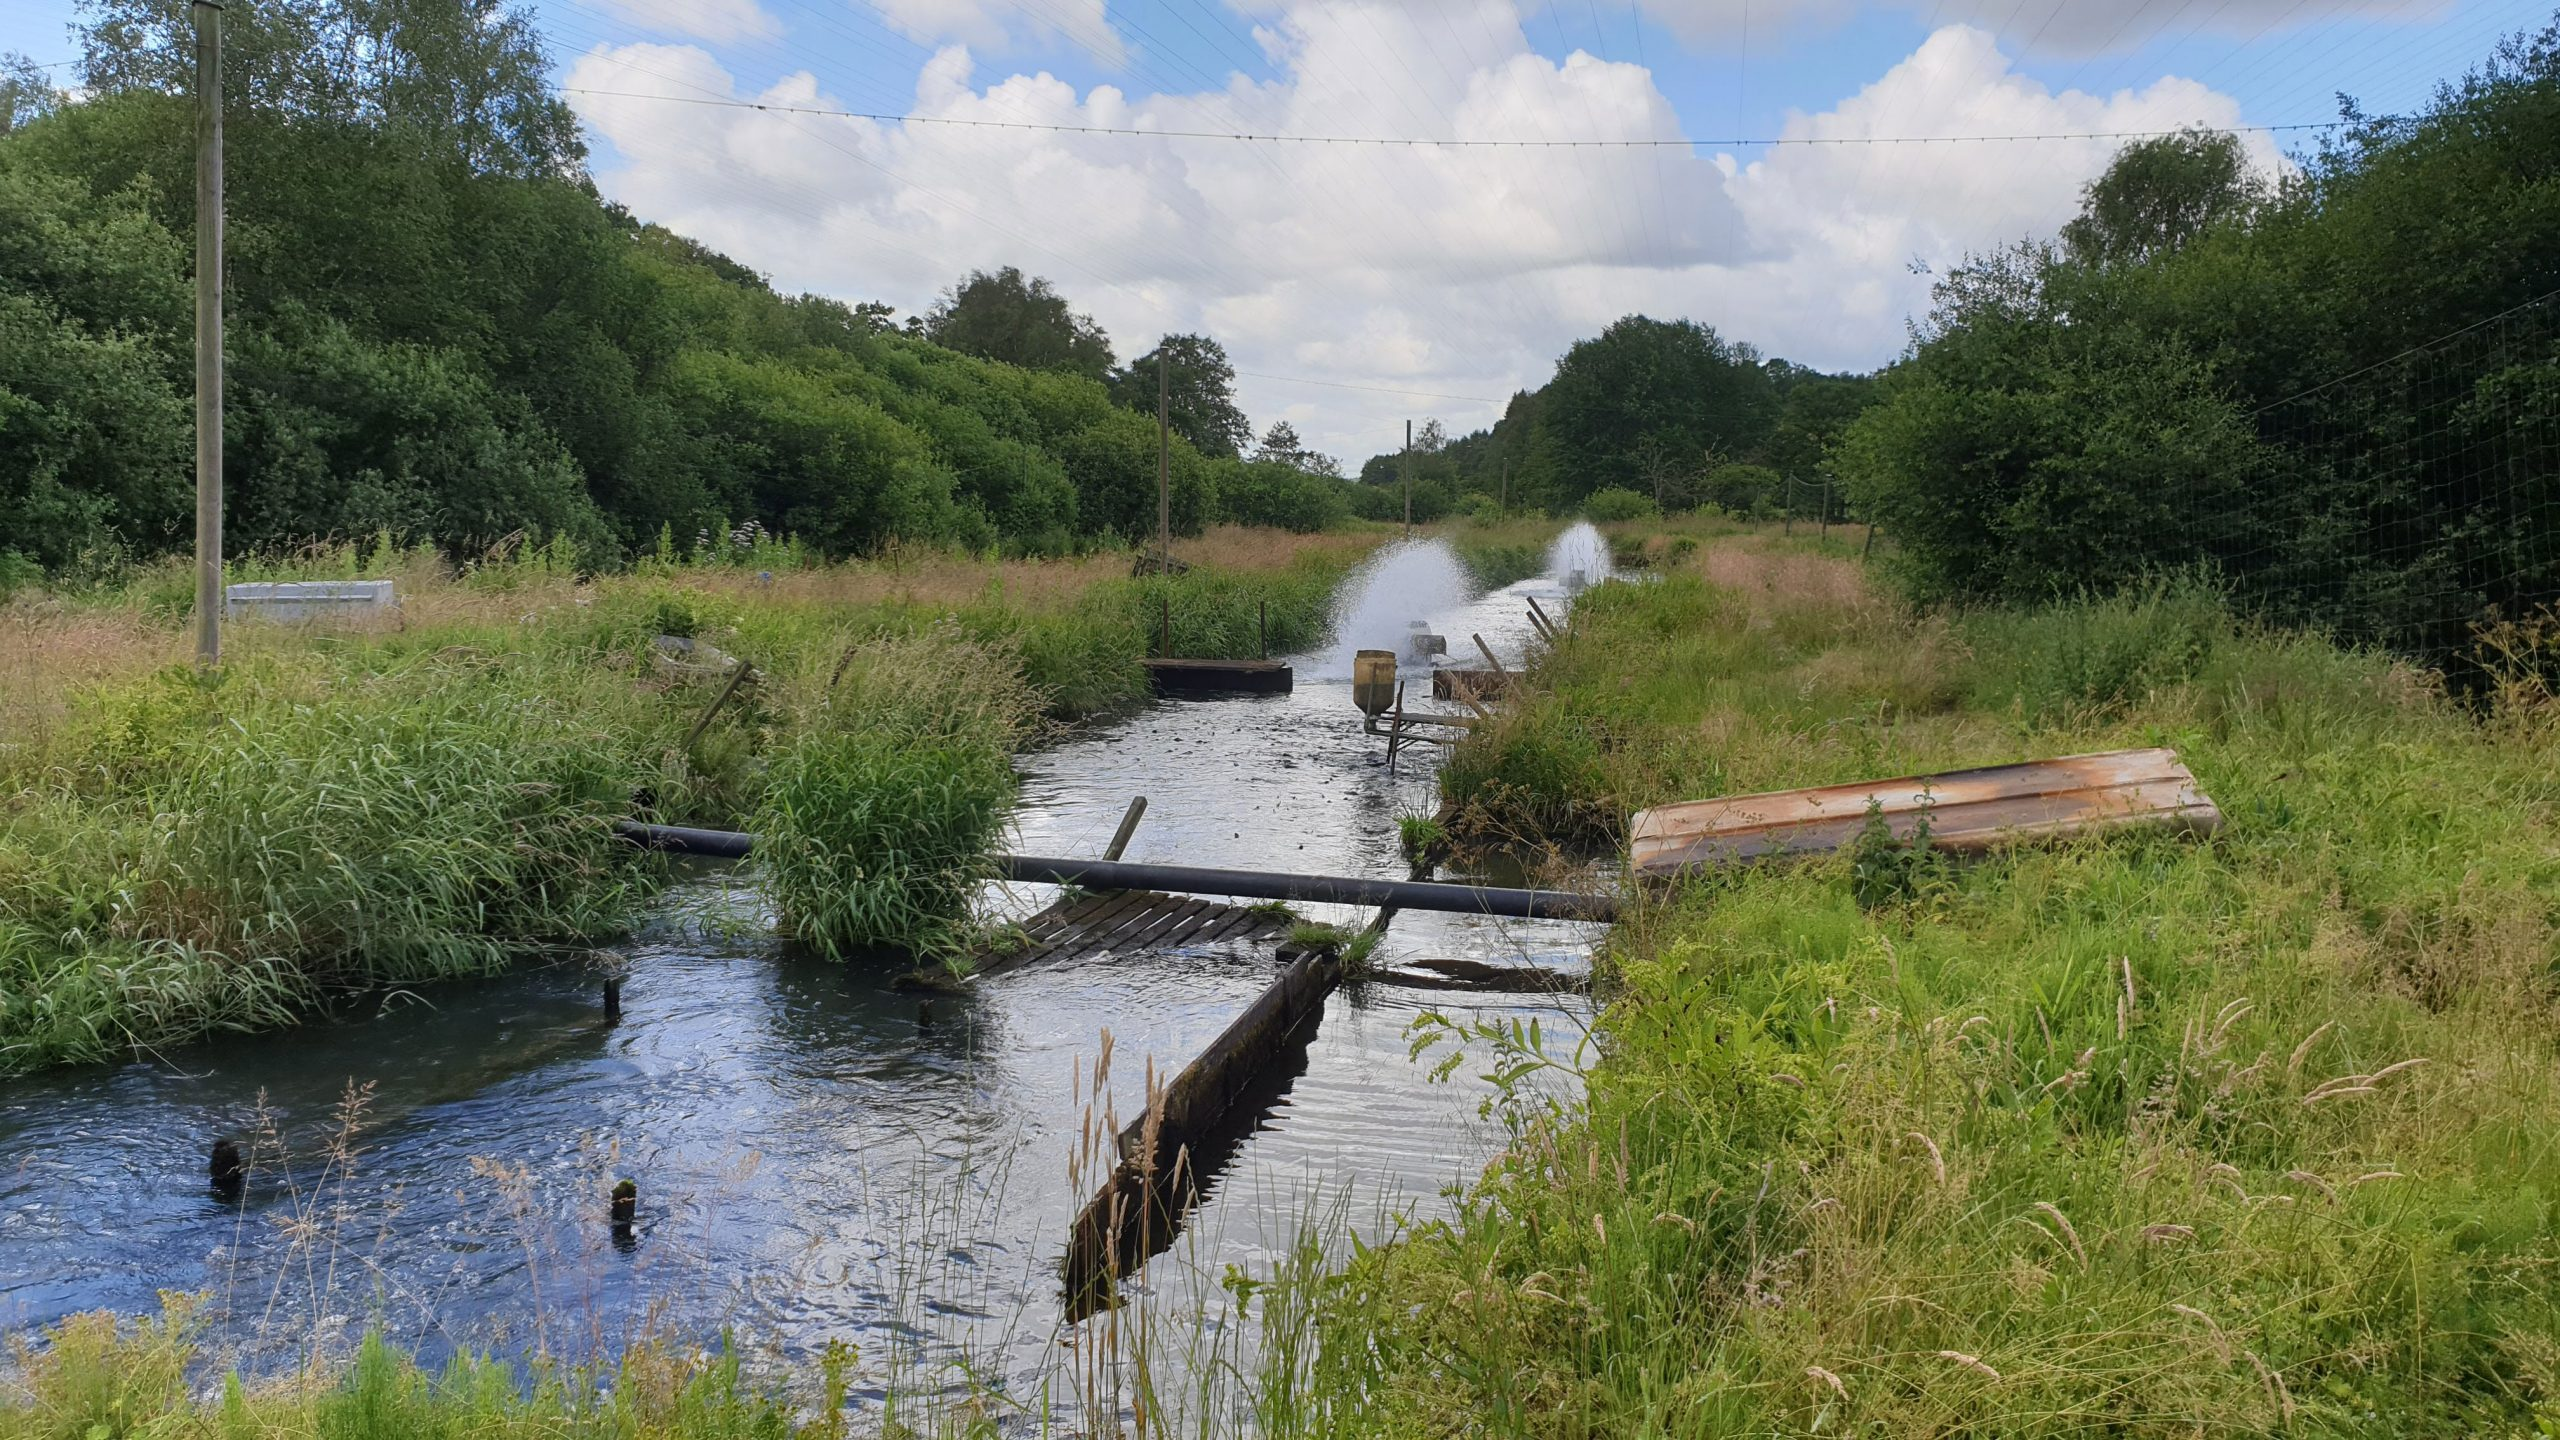 Barrier removal and river restoration of spawning and nursery habitats in the River Vejle